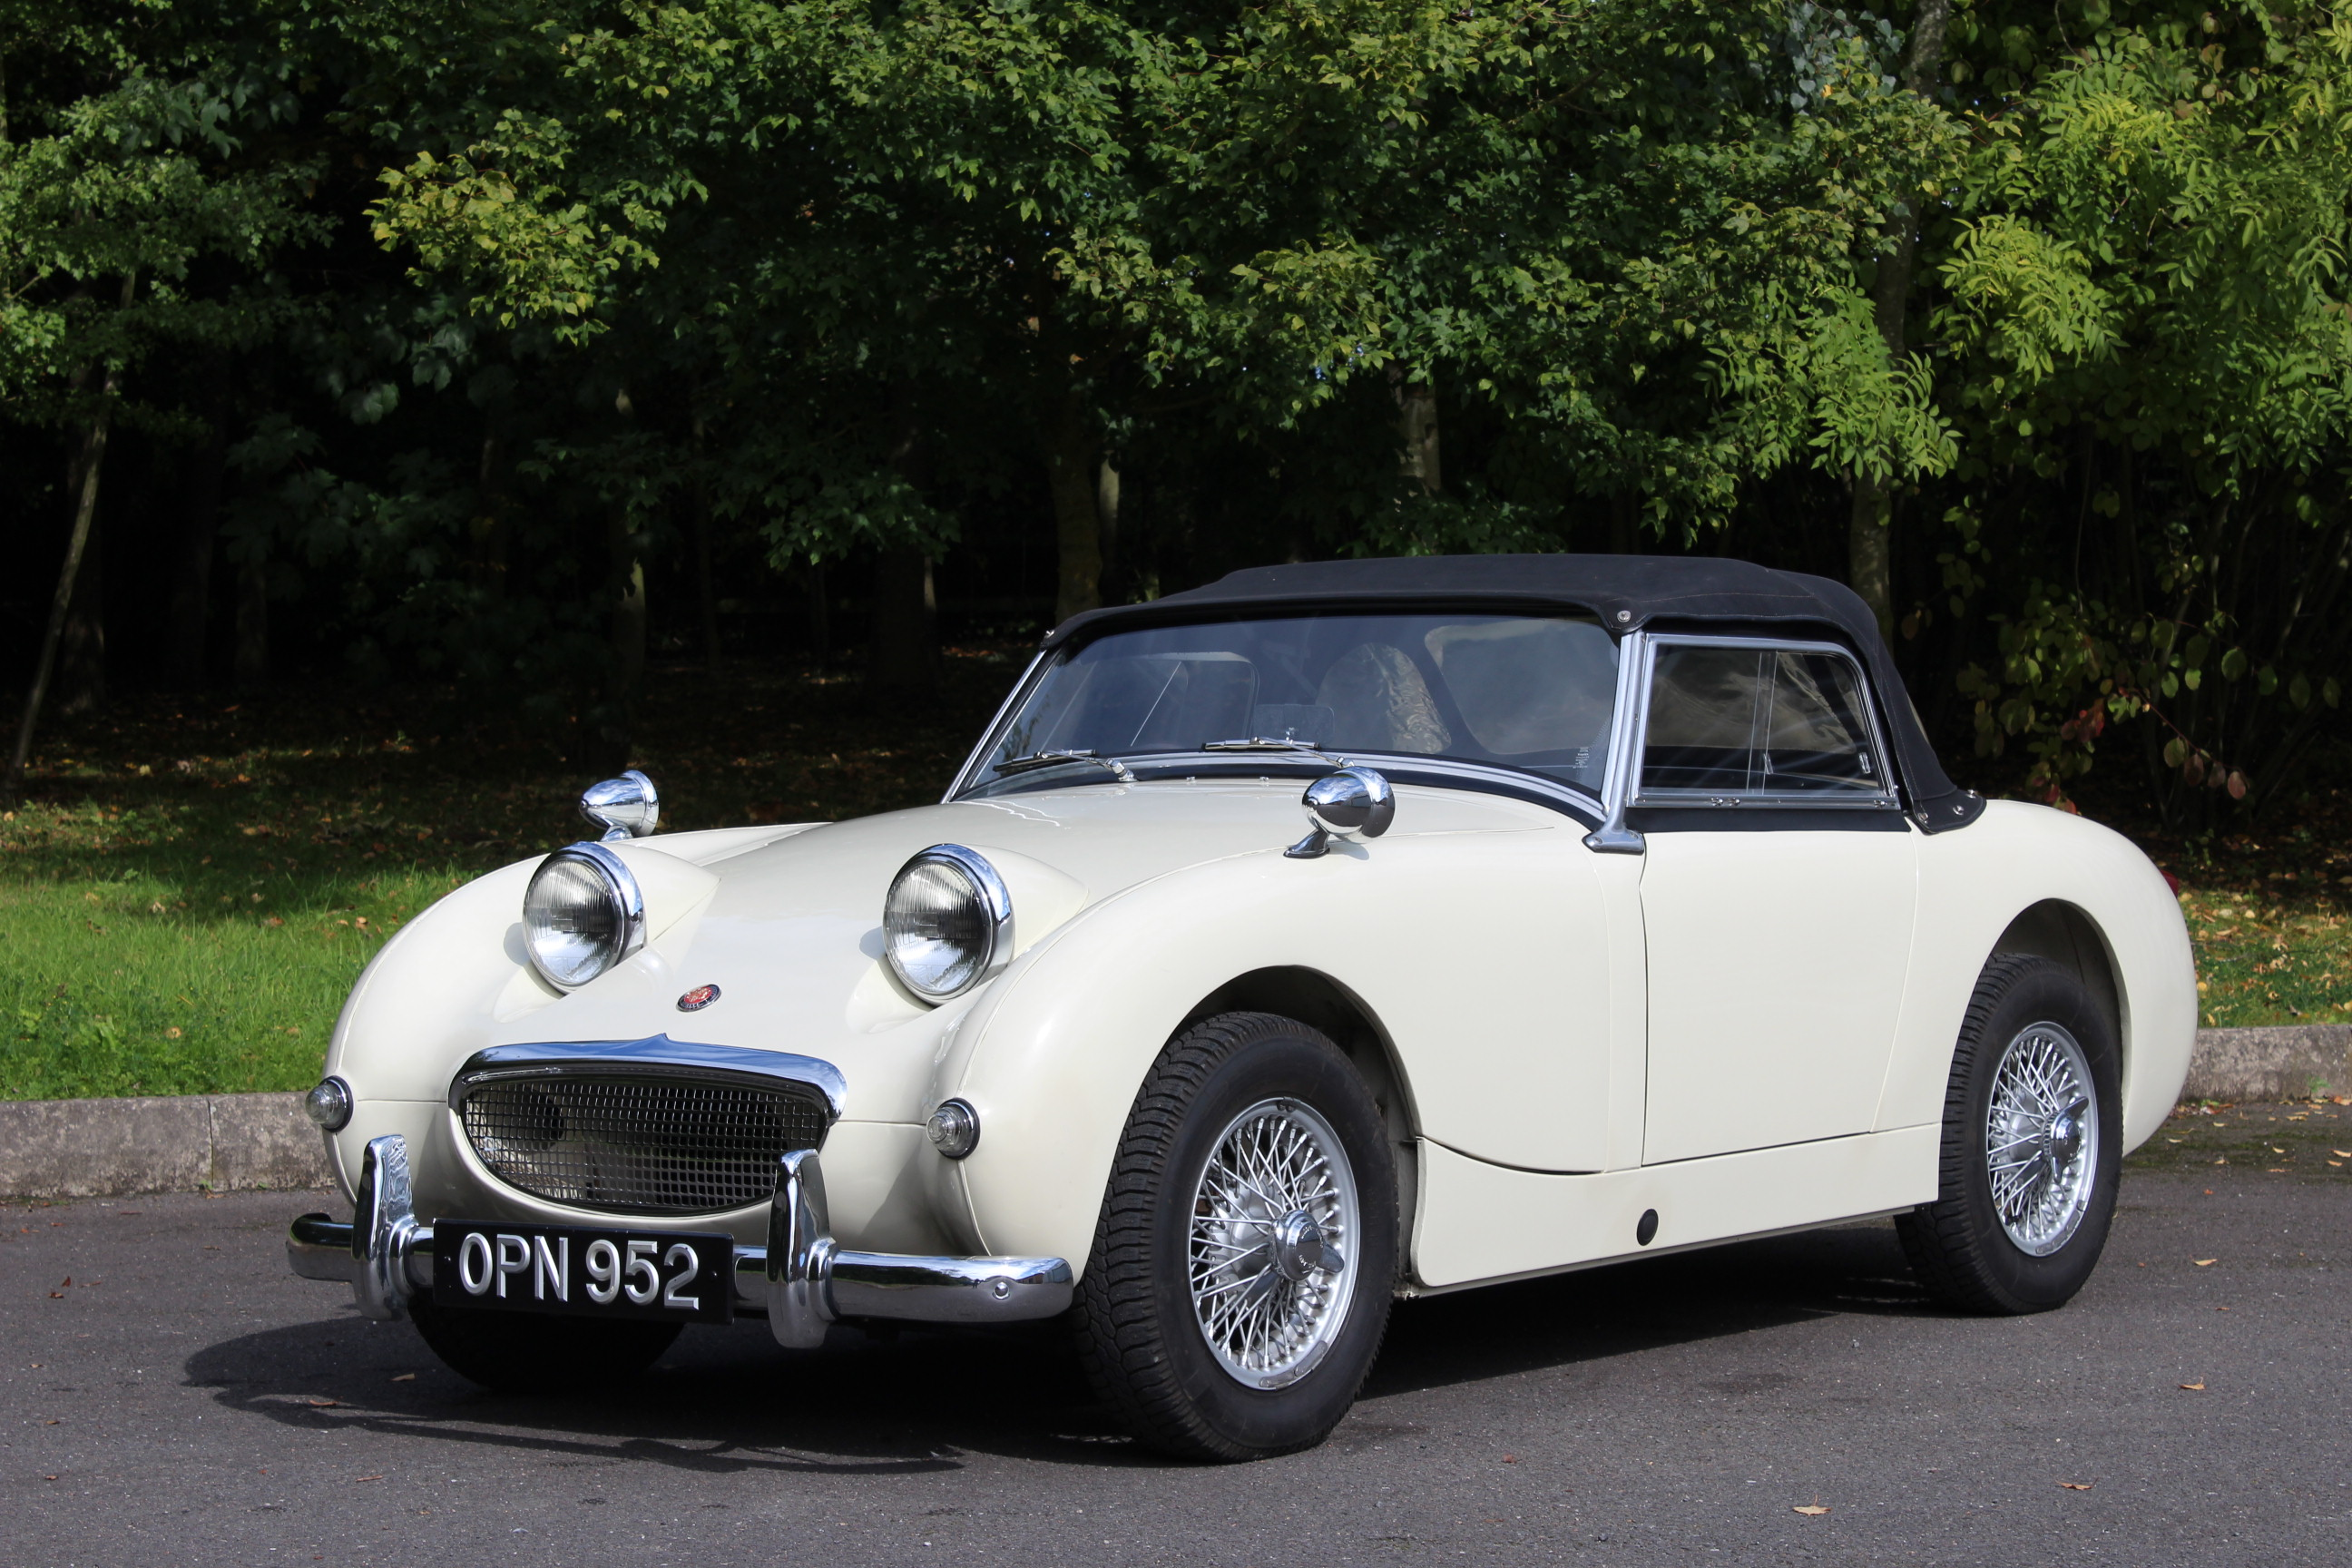 1959 Austin Healey Sprite Mk1 Frog Eye Sherwood Make Your Own Beautiful  HD Wallpapers, Images Over 1000+ [ralydesign.ml]